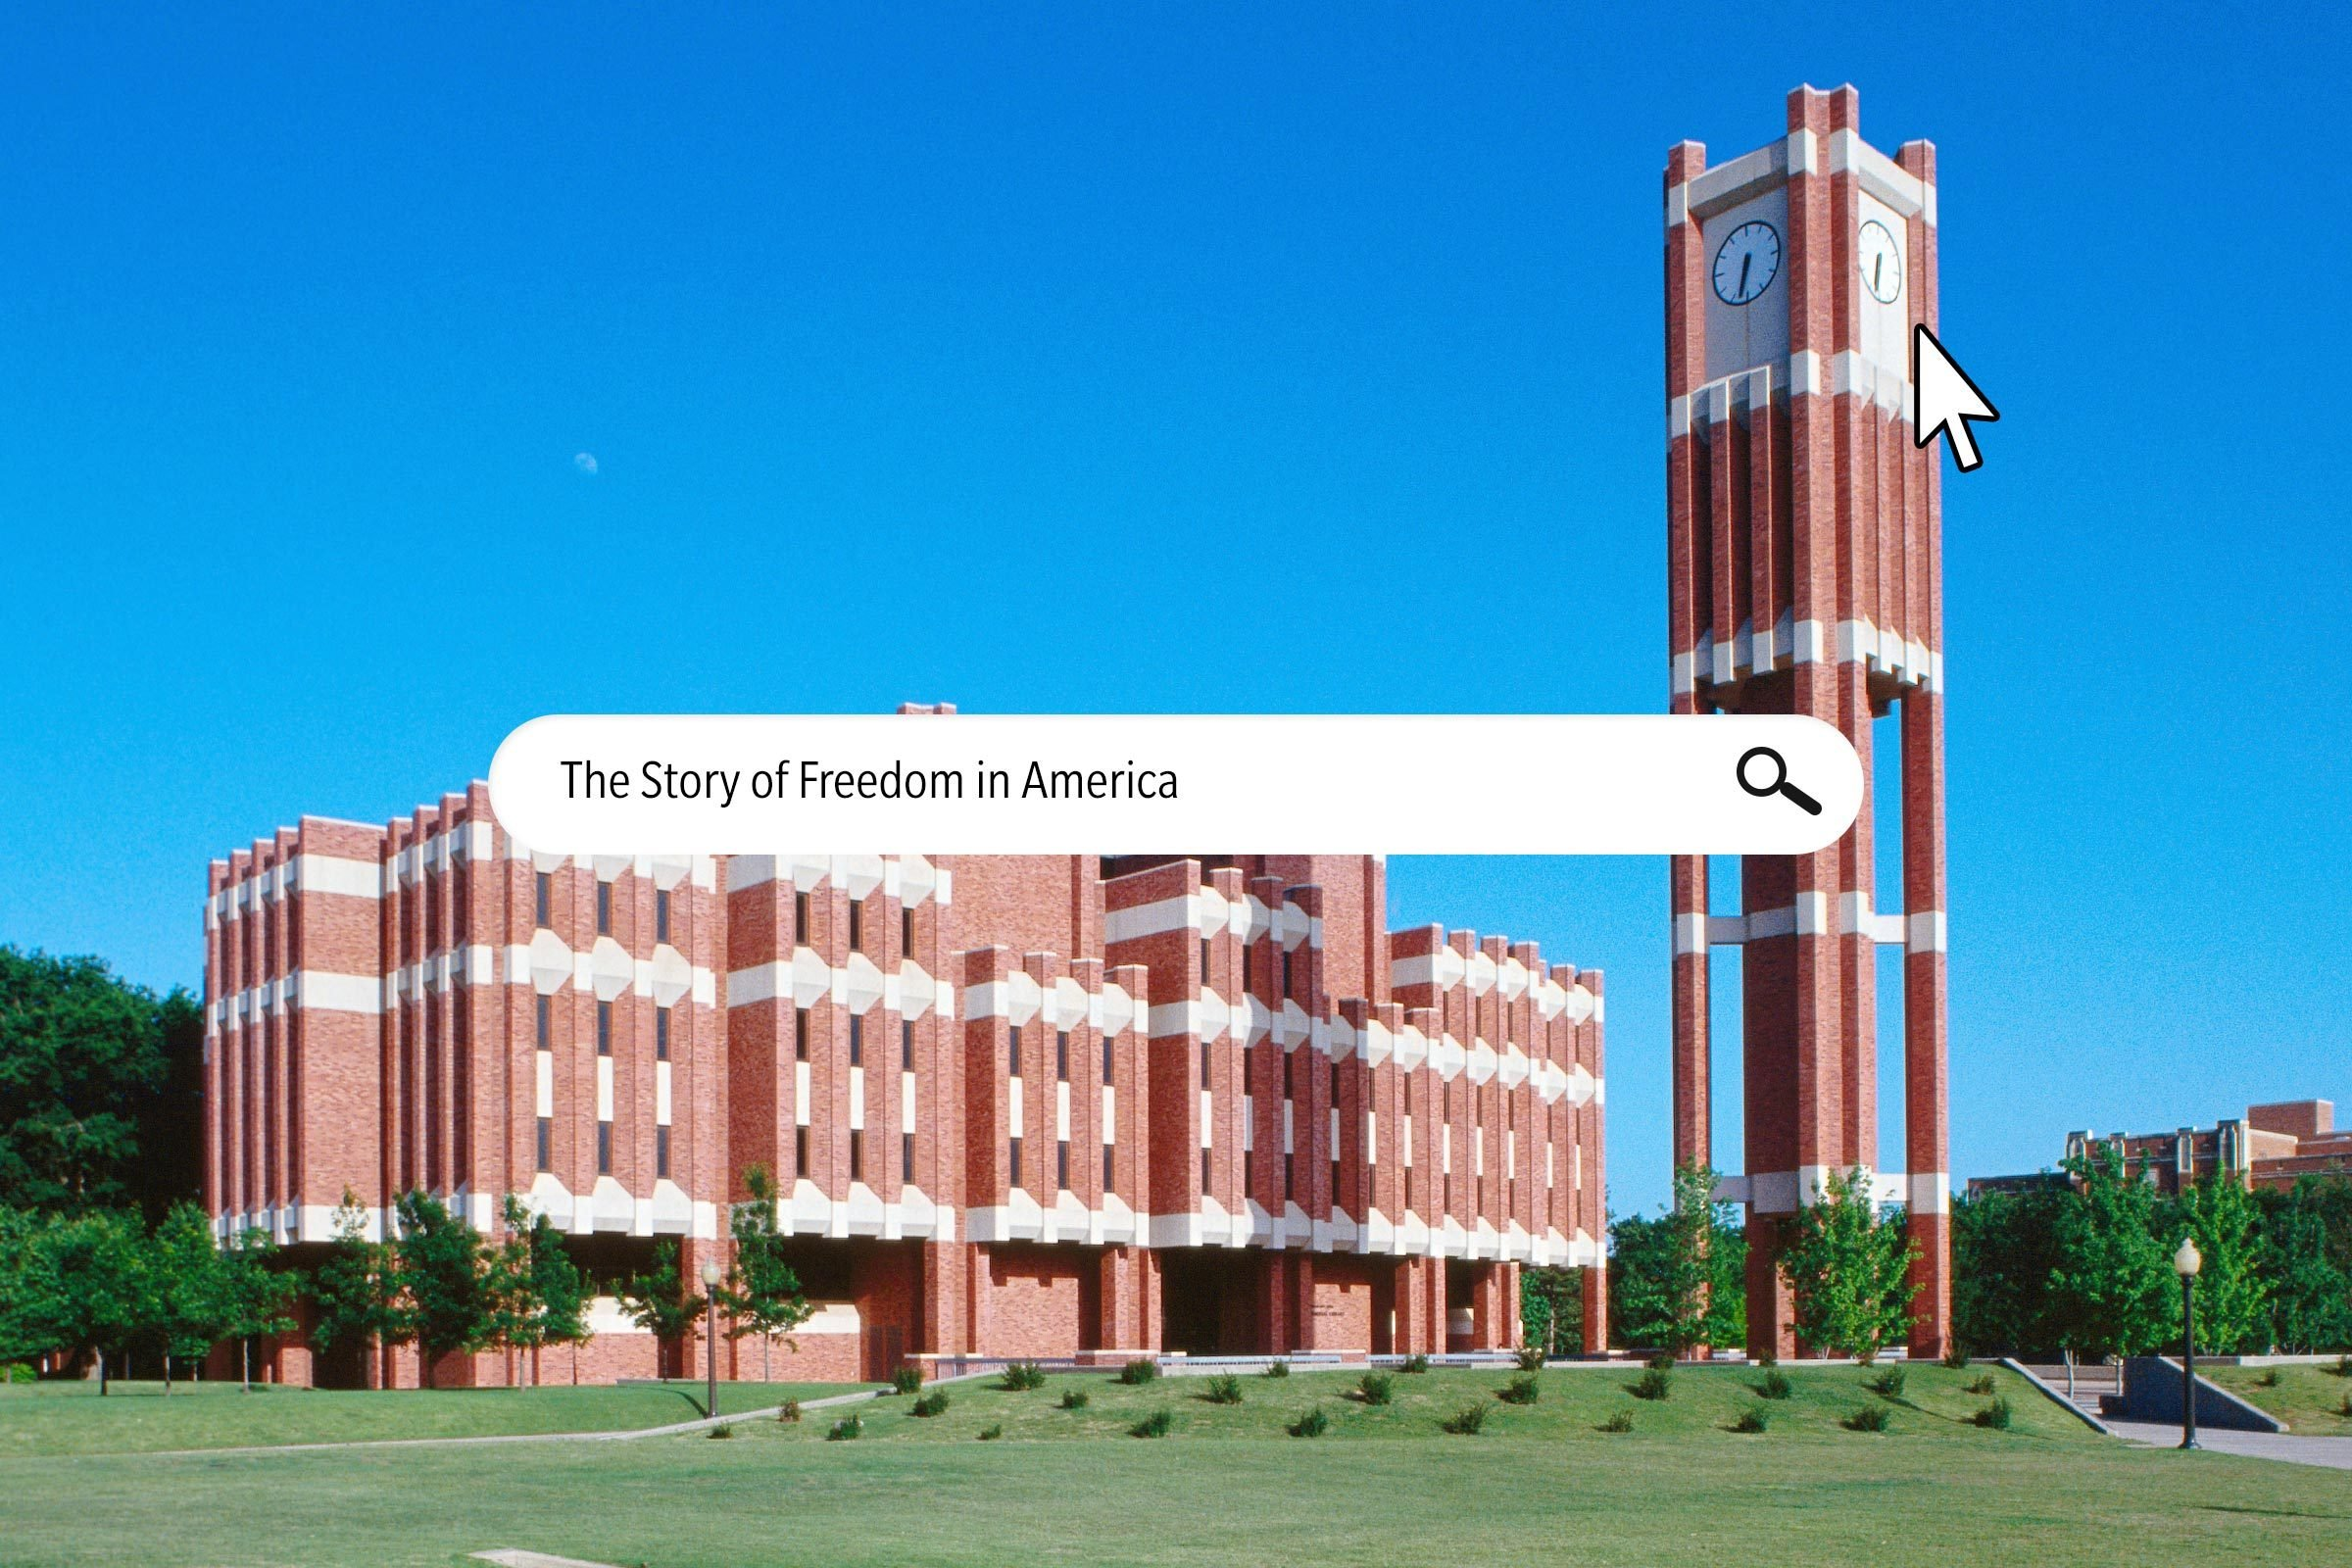 The Story of Freedom in America (University of Oklahoma)